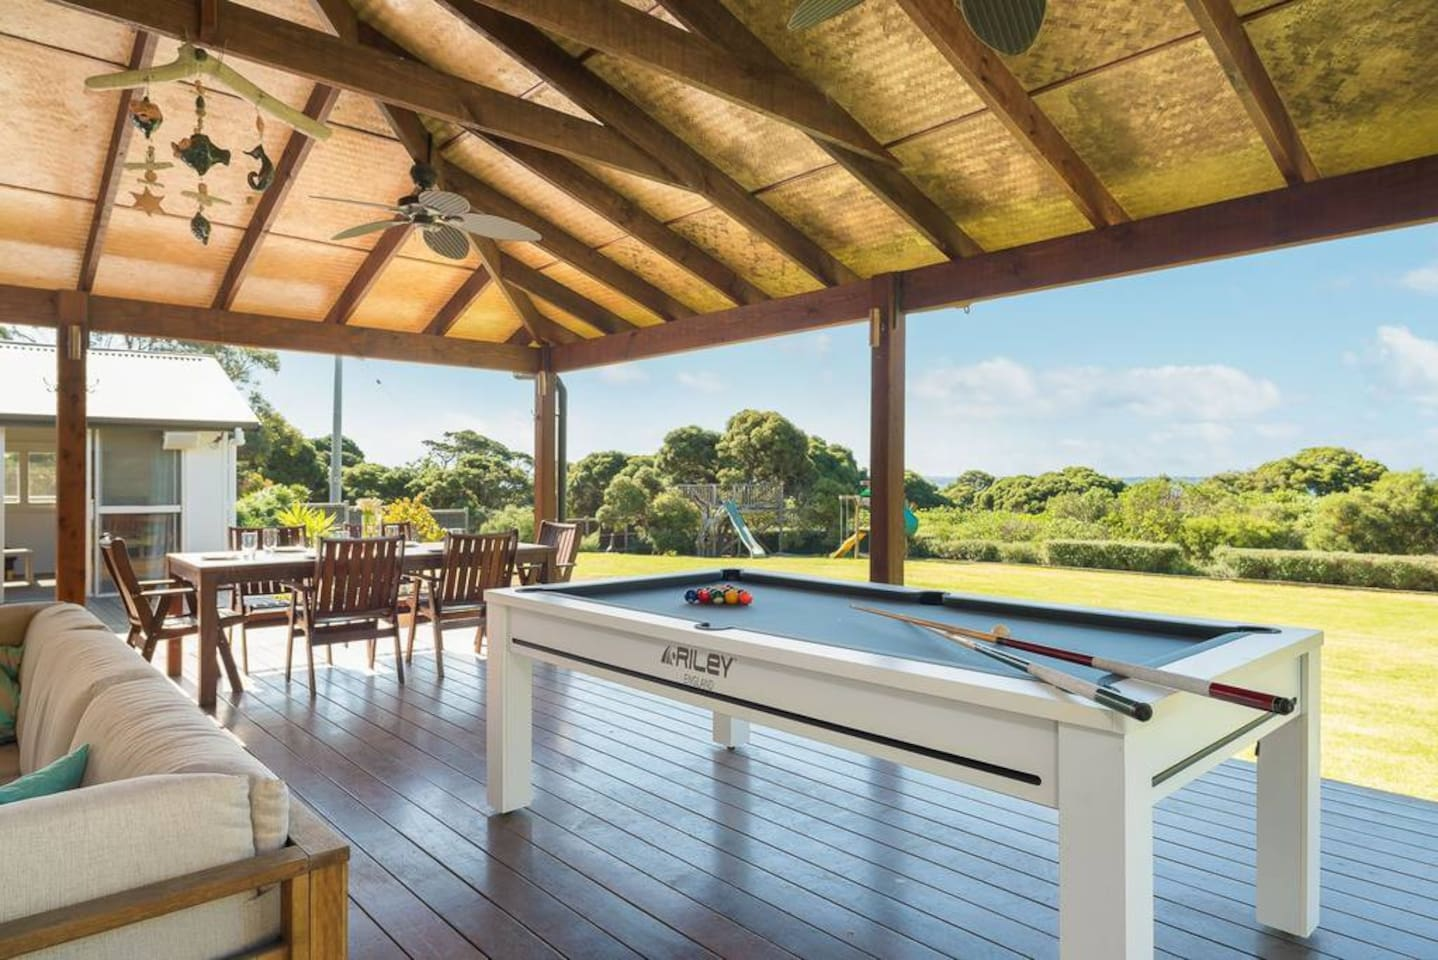 Deck with pool table